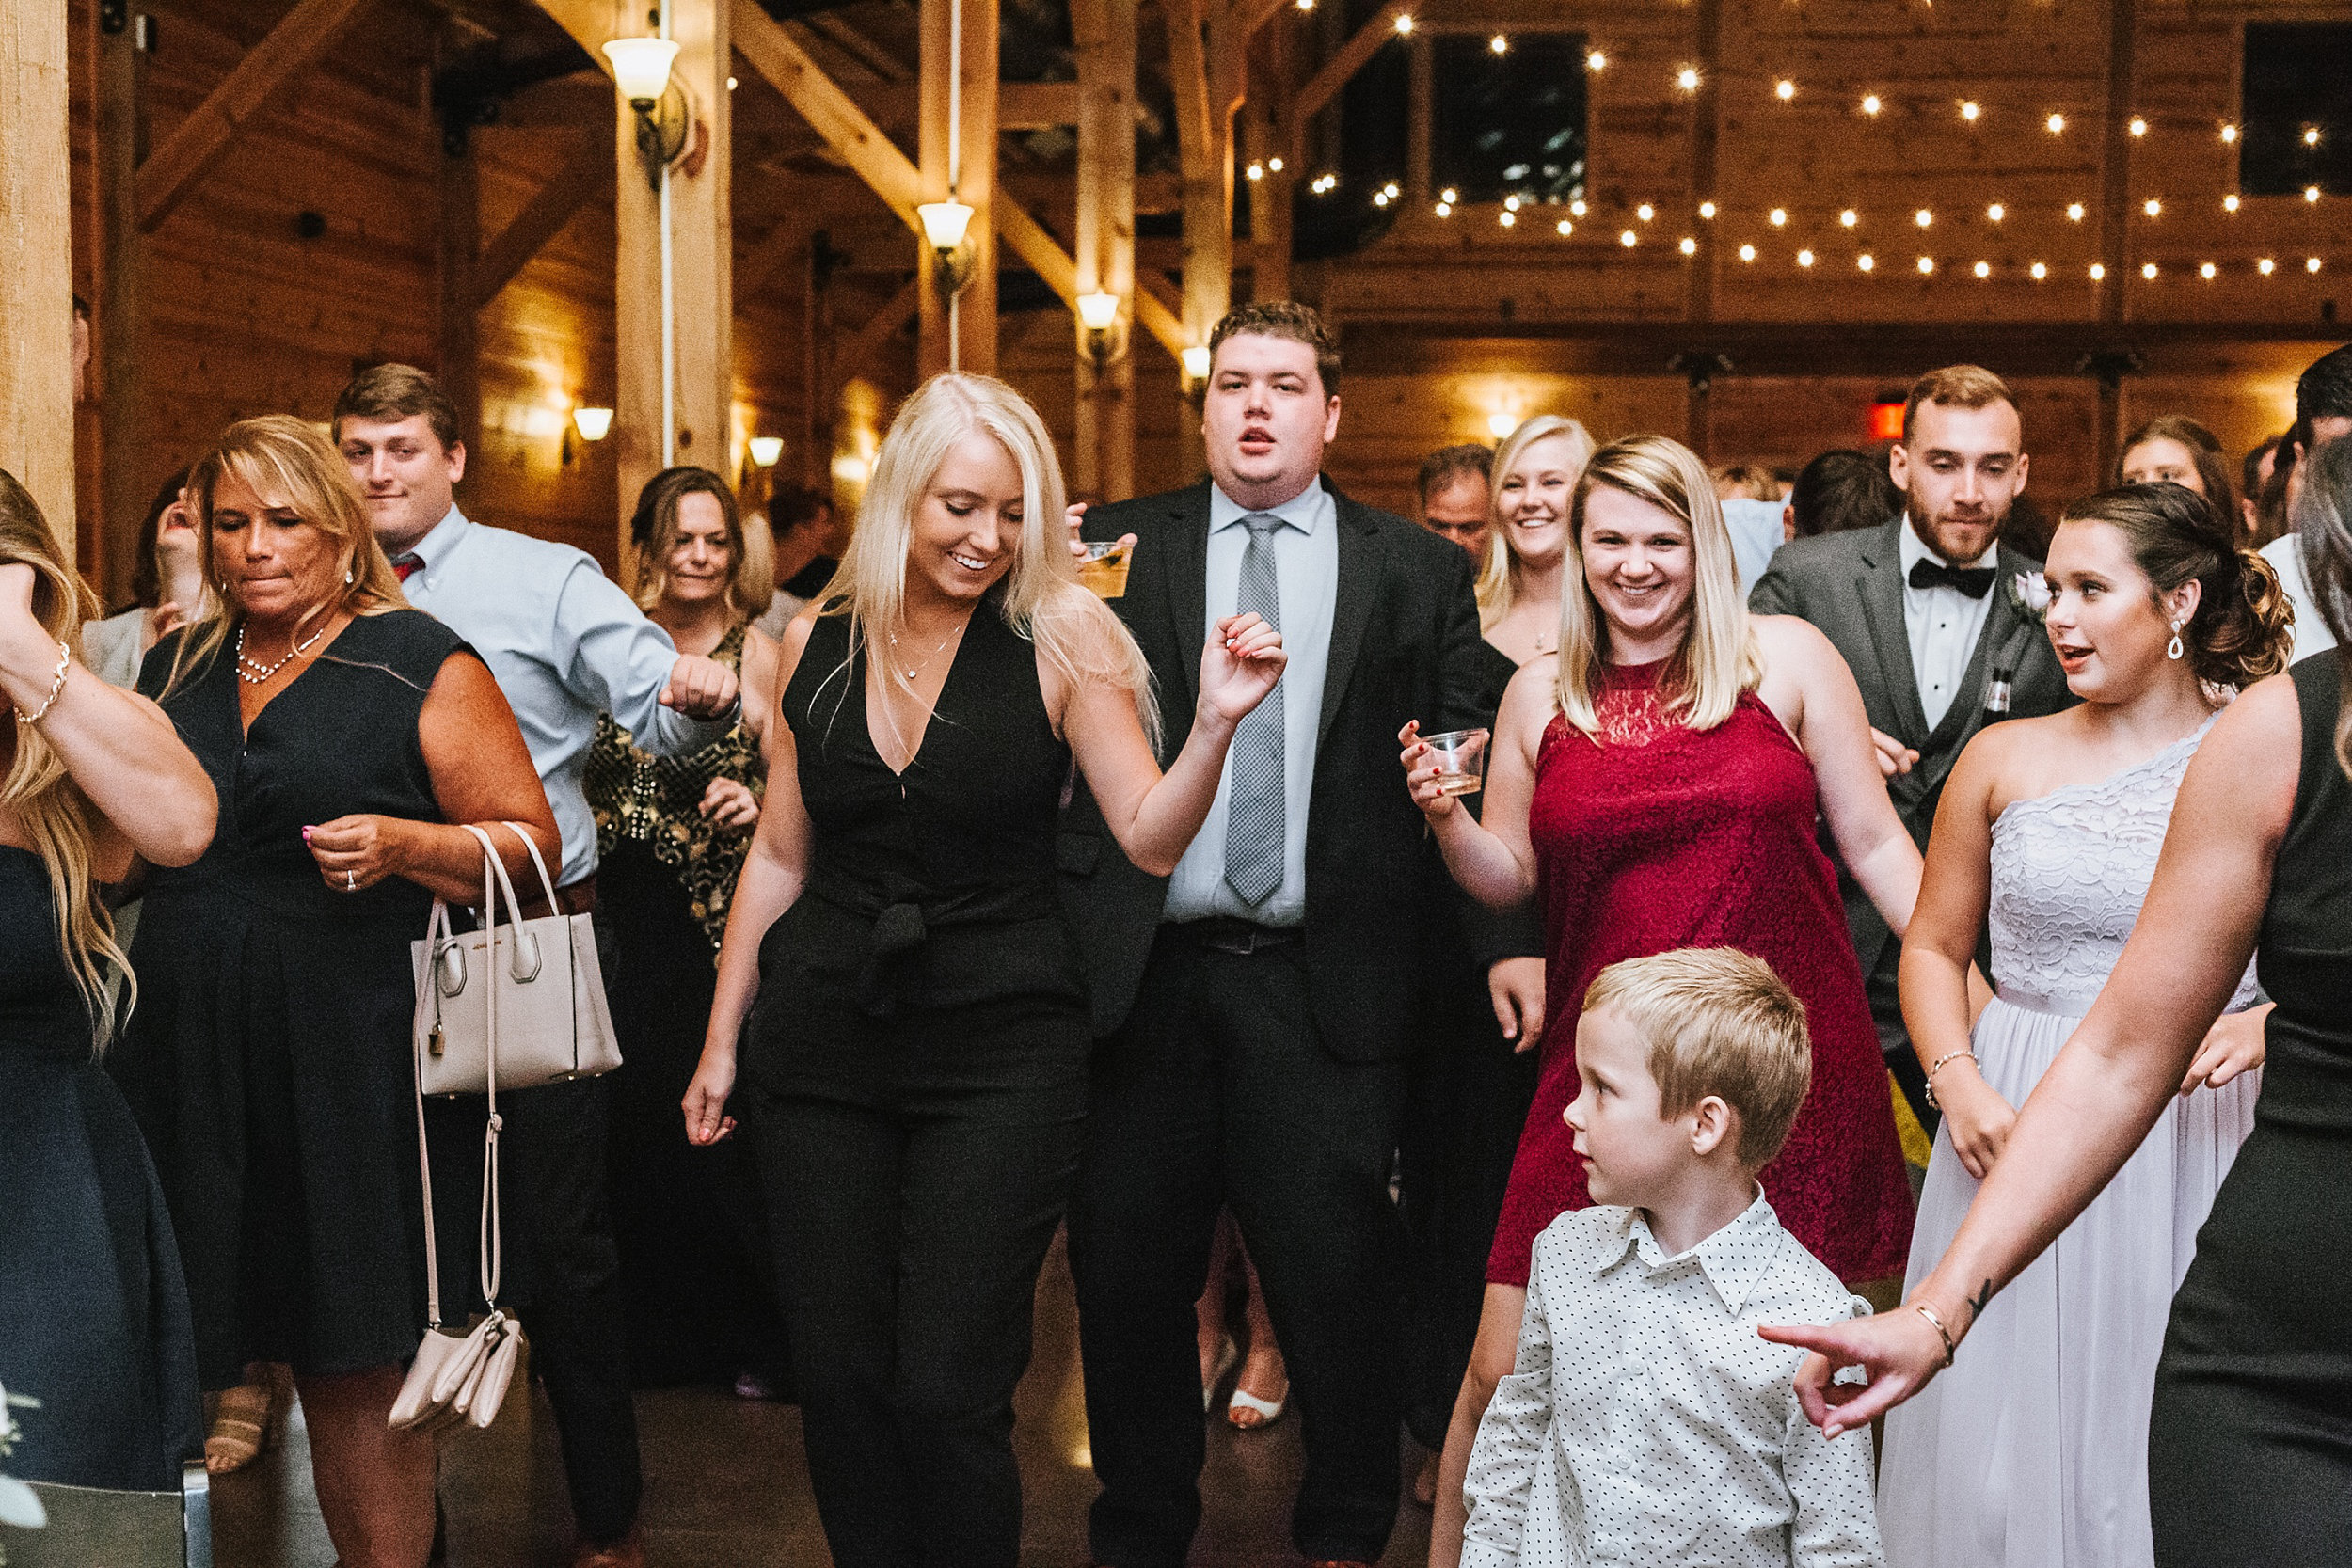 Brooke Townsend Photography - Cincinnati Wedding Photographer (228 of 230).jpg